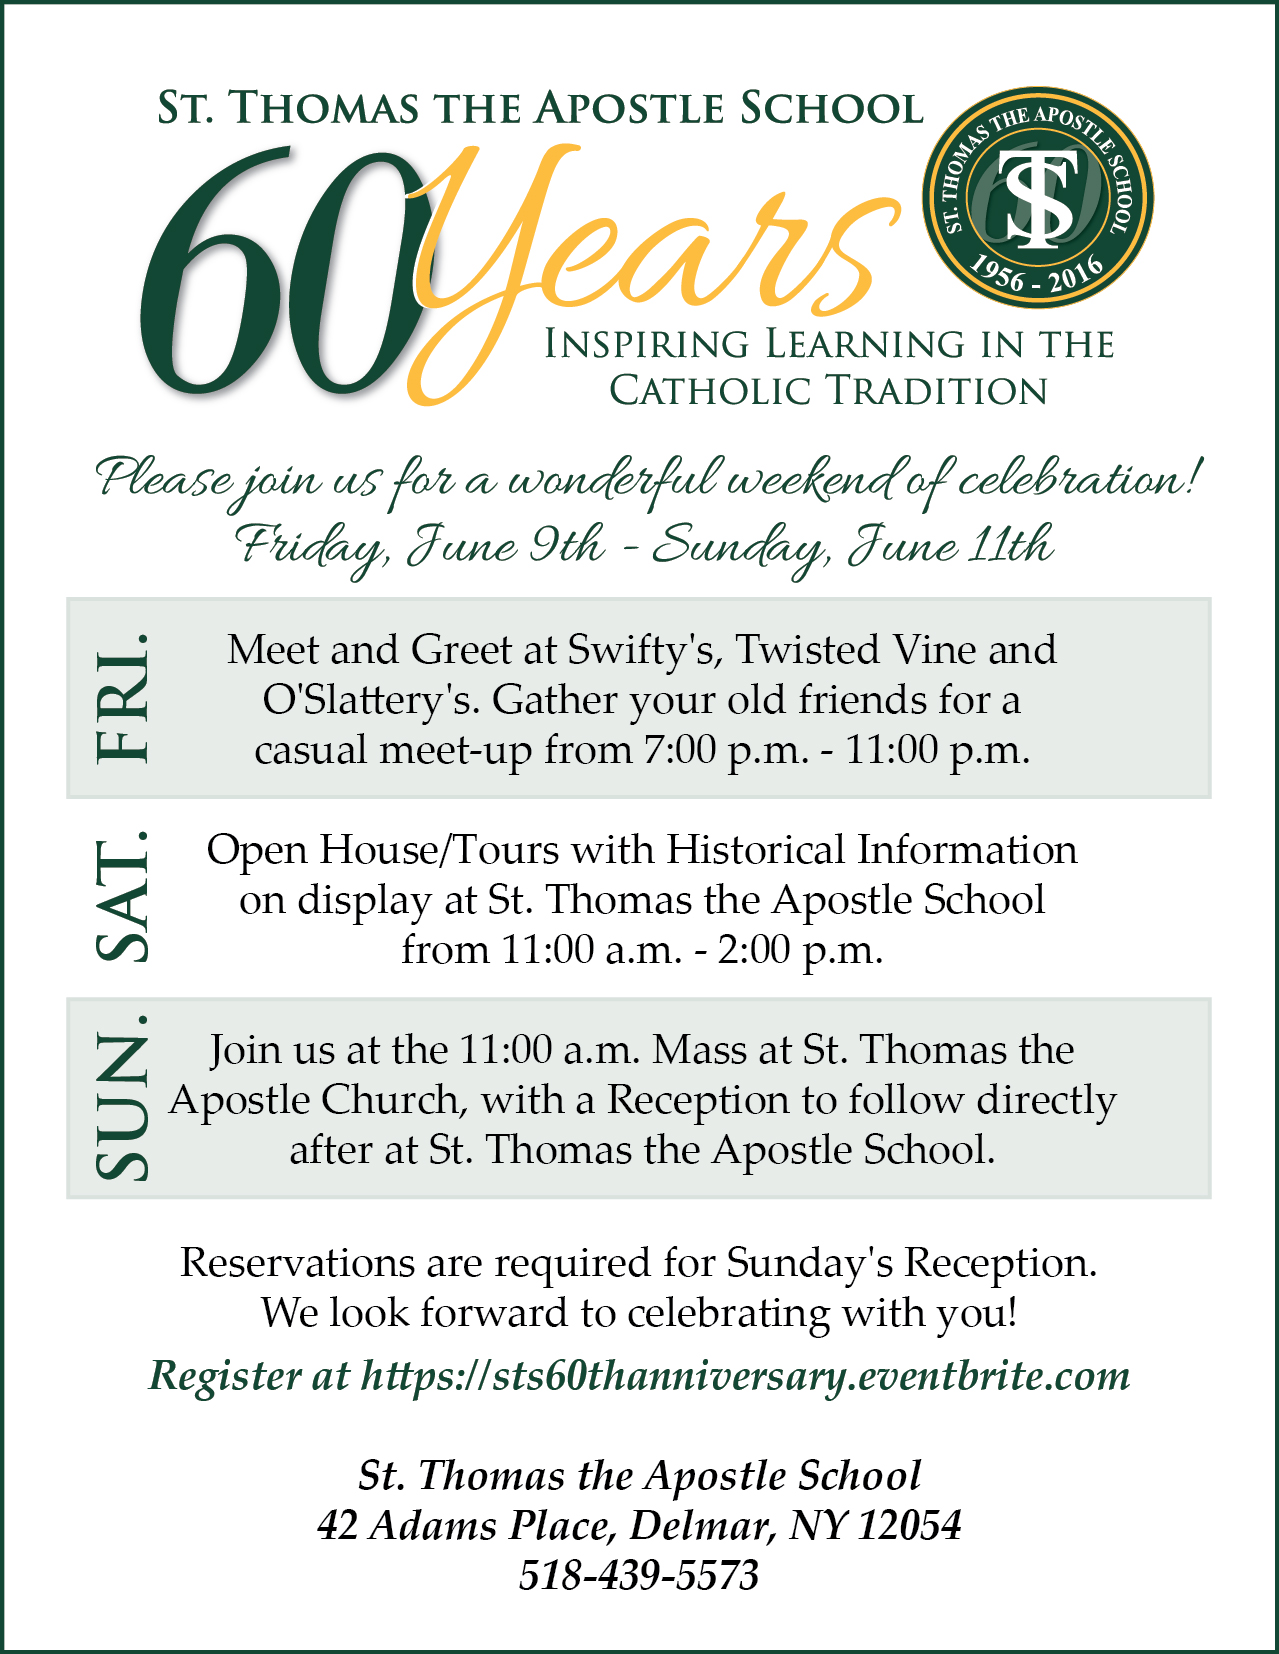 St. Thomas the Apostle School 60th Anniversary Weekend